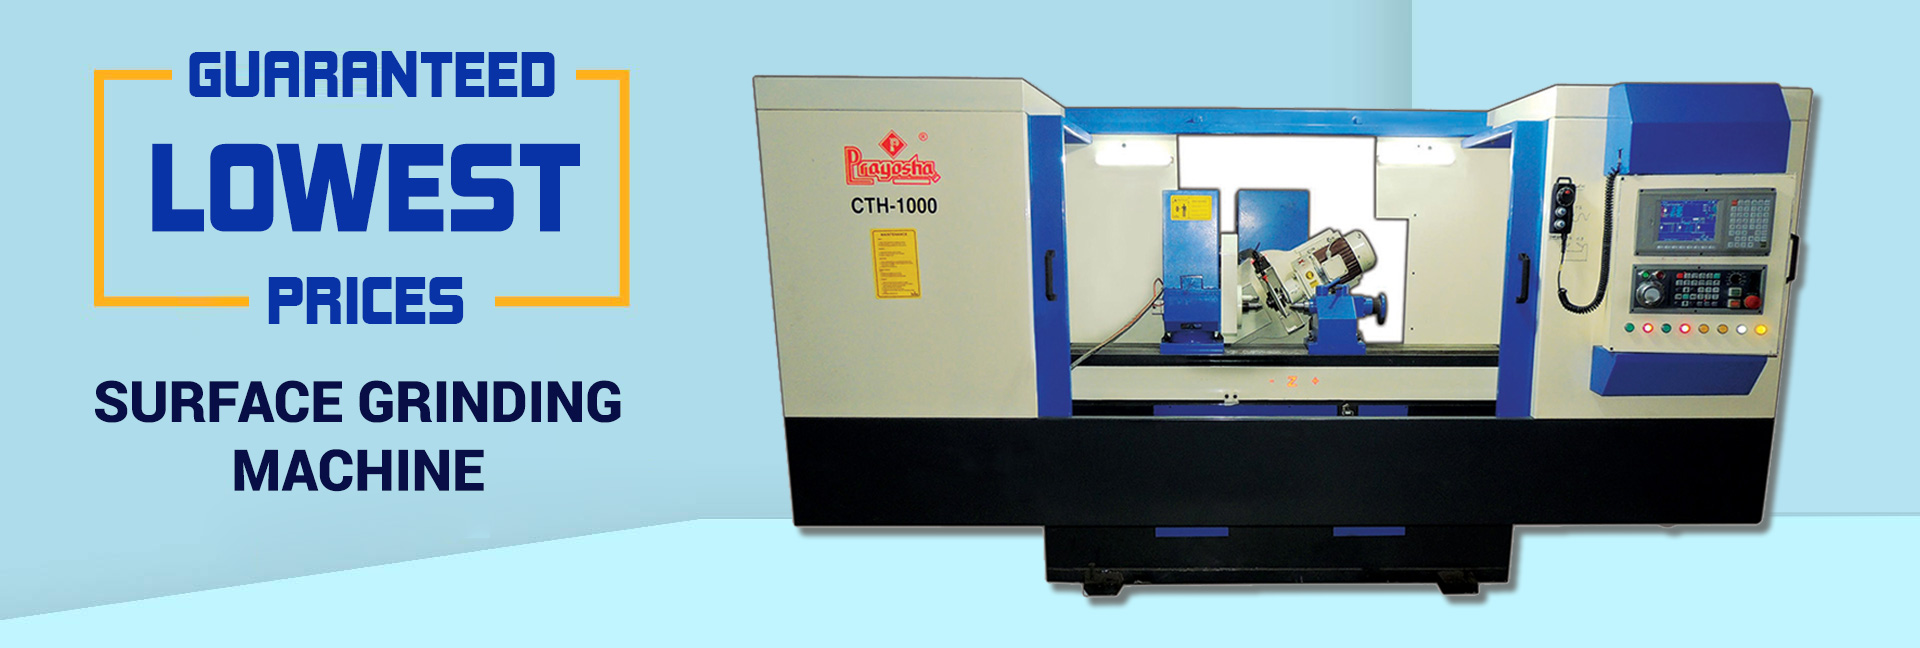 surface grinding machine, Manufacturer